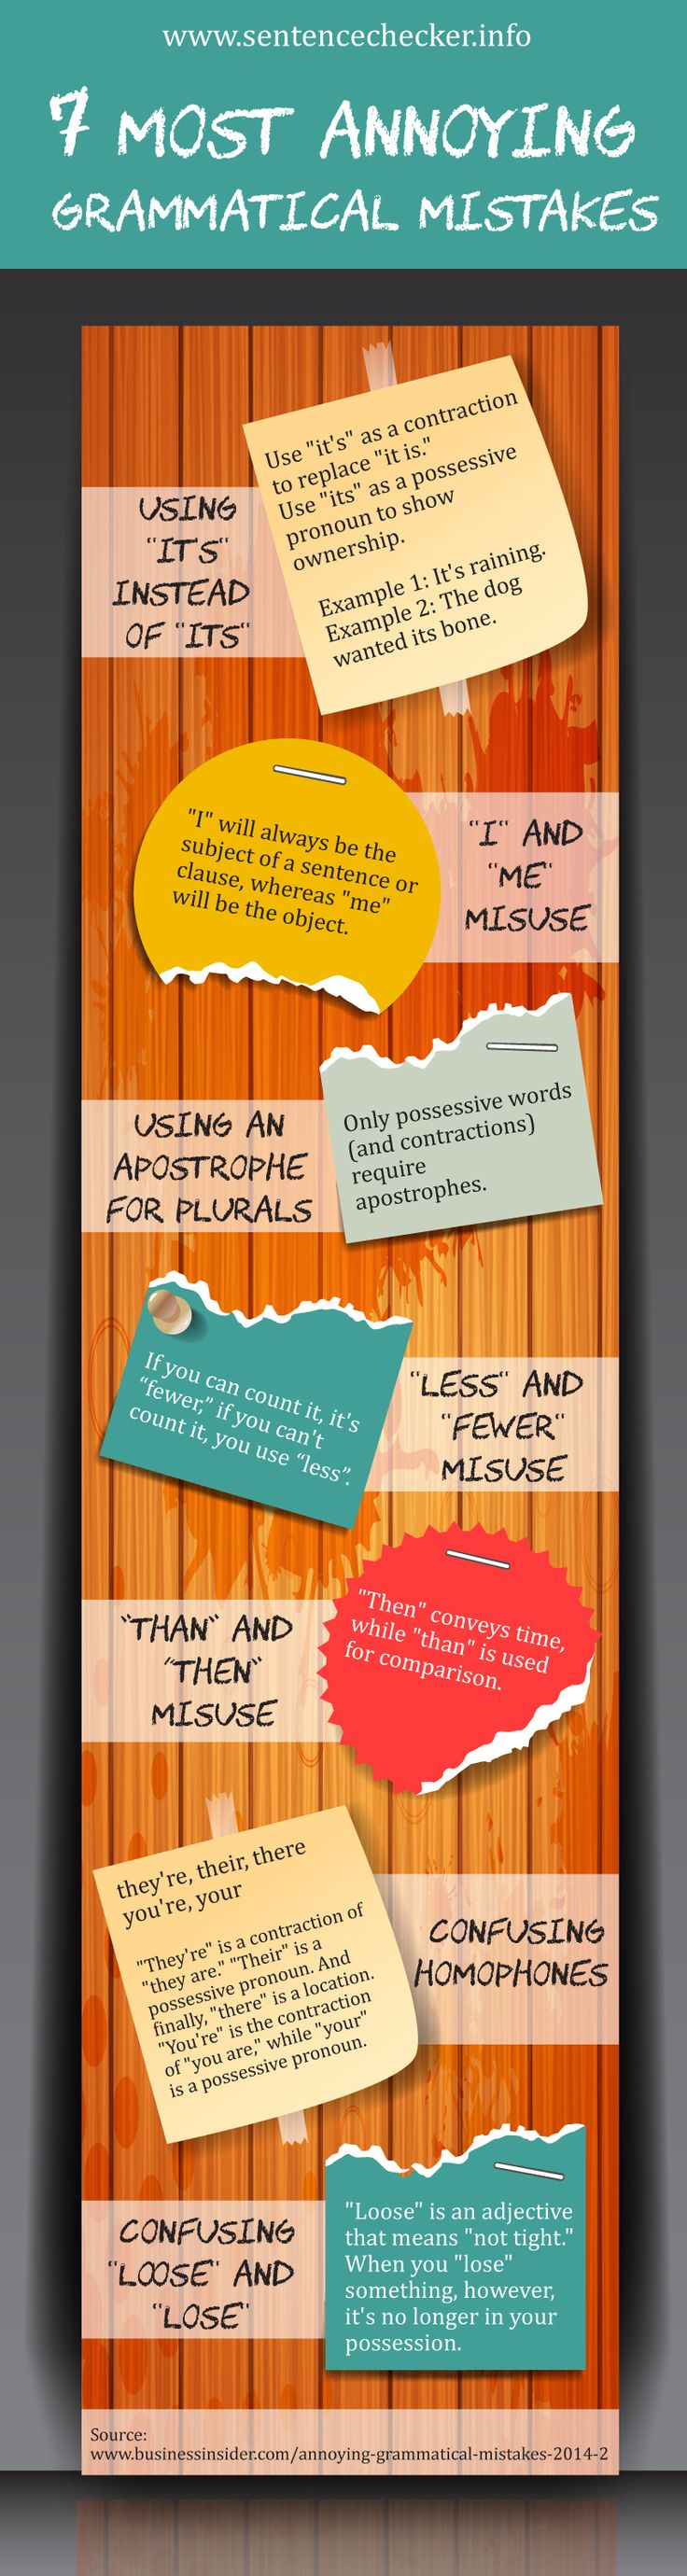 7 Most Annoying Grammatical Mistakes 31 best